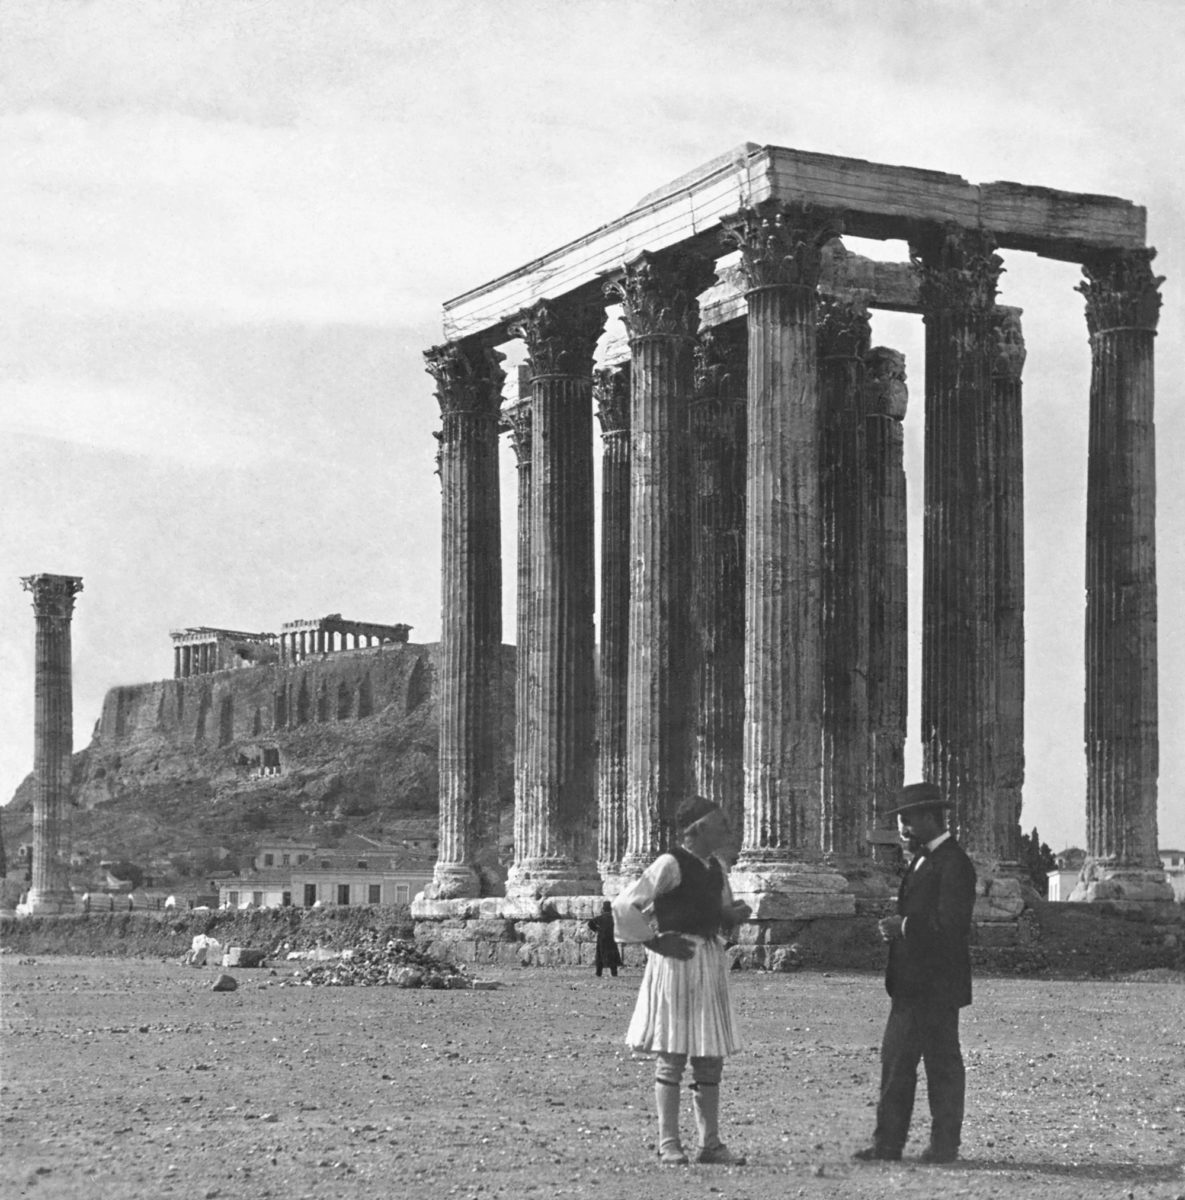 A guard in traditional Greek dress and a middle-class Athenian dressed in the manner talk in front of the temple of Olympian Zeus. Late 19th, early 20th century. Photographer unknown. Courtesy of the Library of Congress